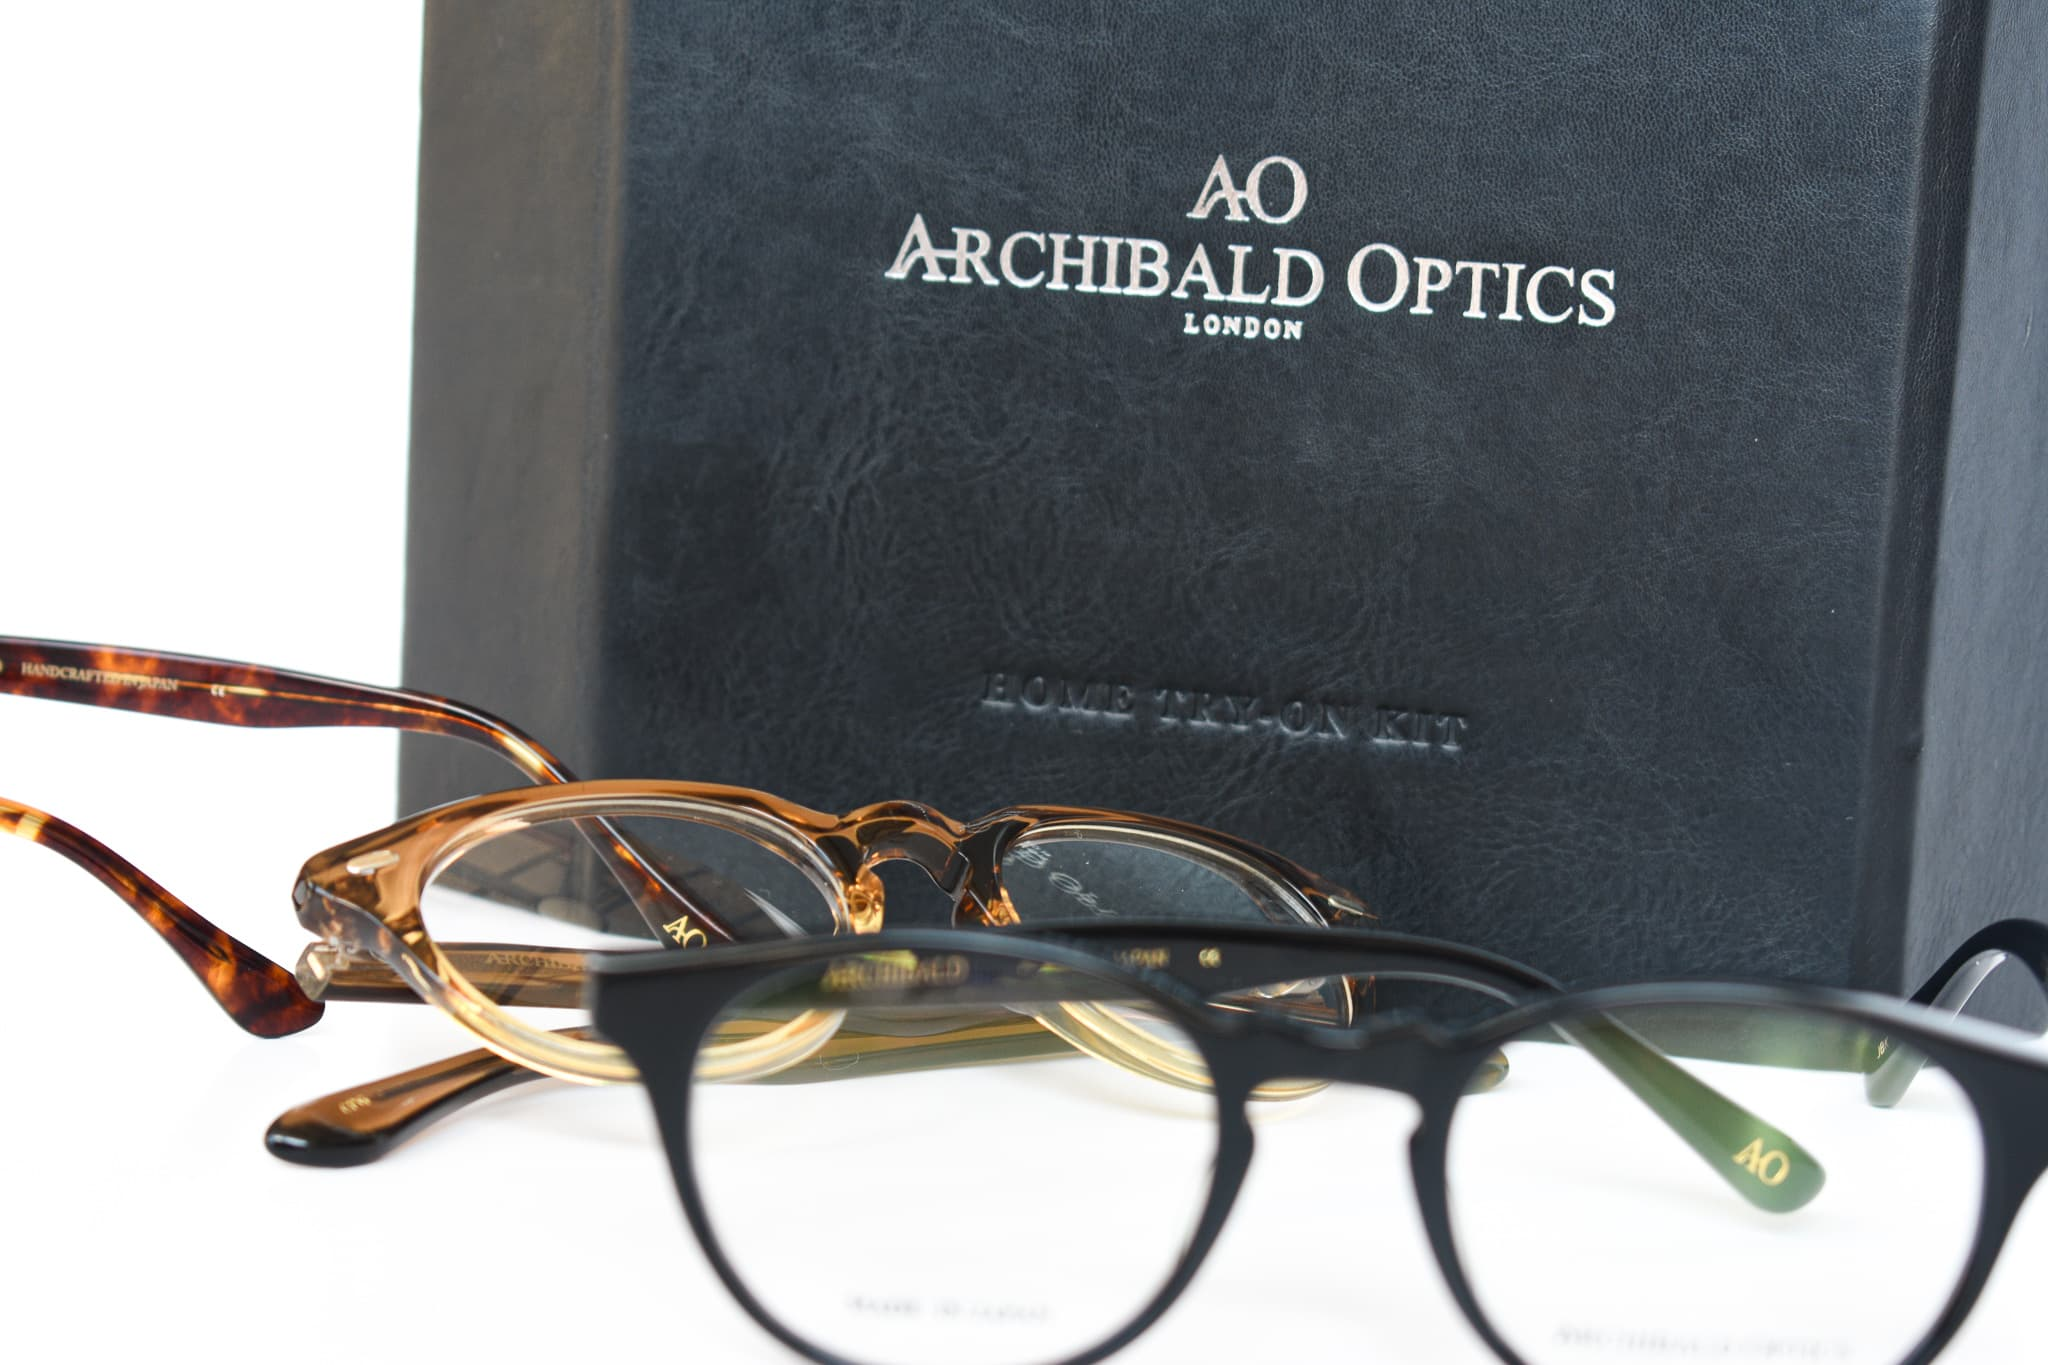 Archibald Optics close-up